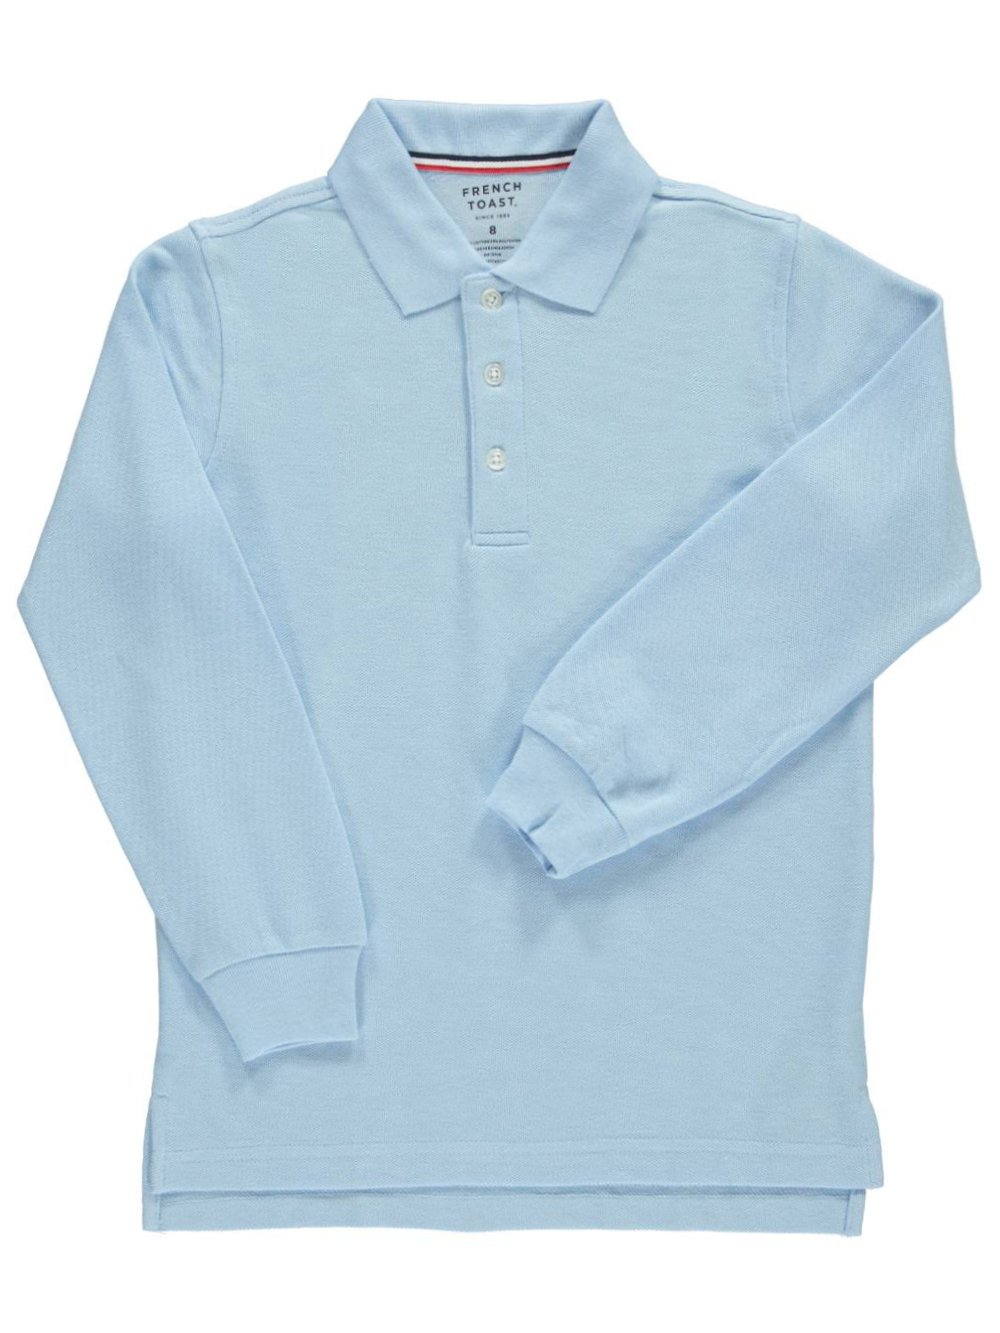 French Toast L/S Pique Polo - blue, 8